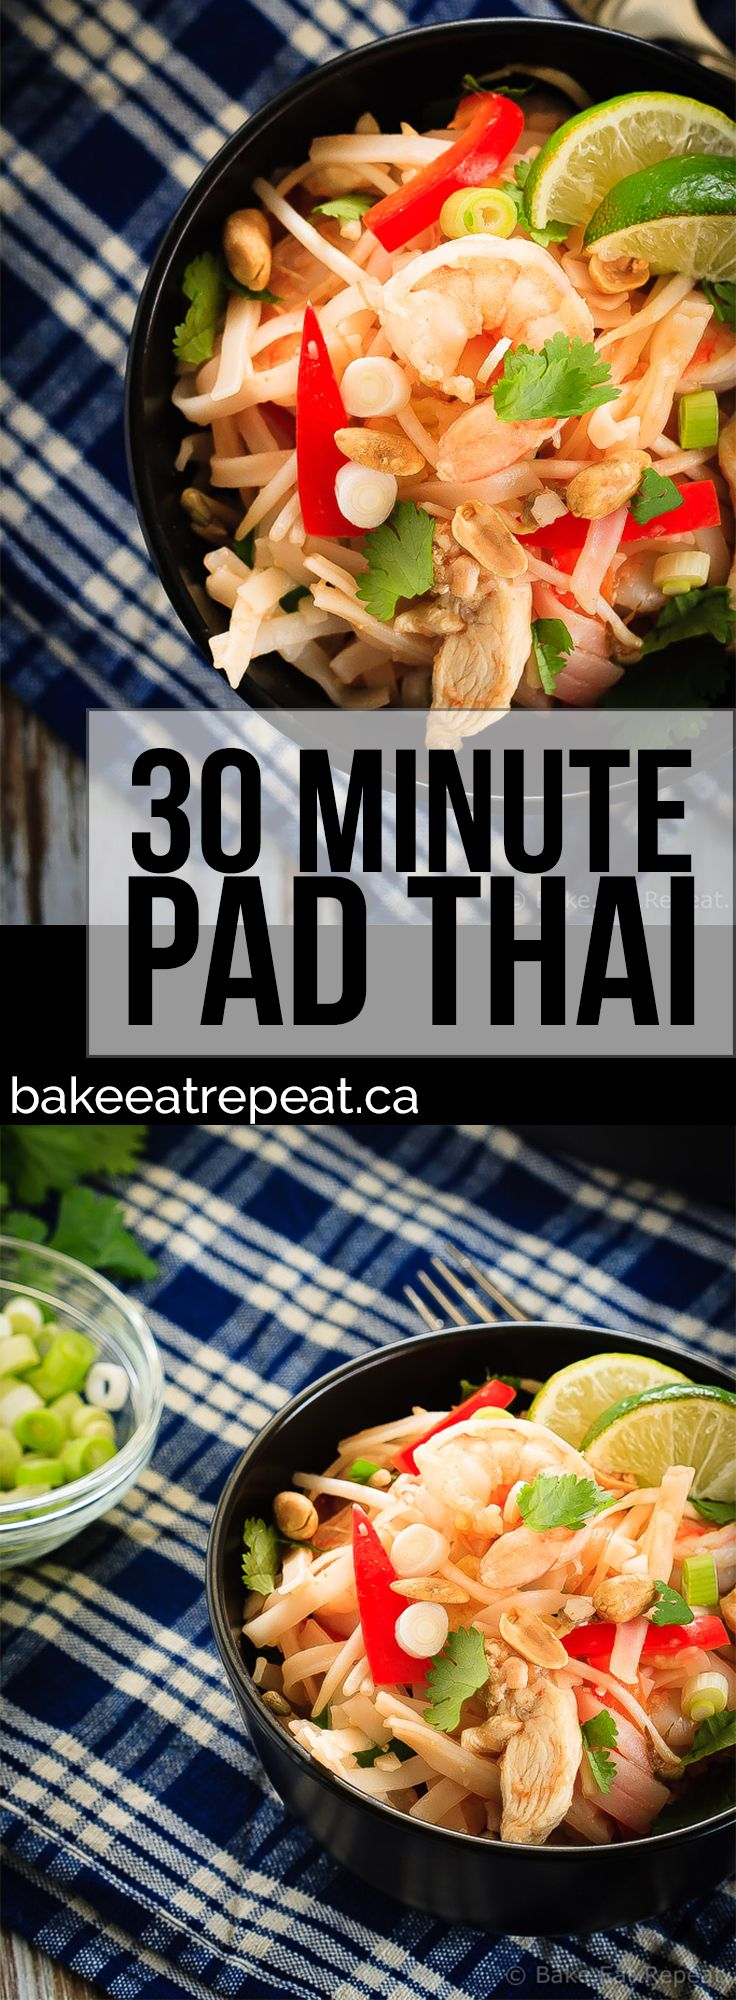 30 Minute Pad Thai - Skip the takeout and make your Pad Thai at home instead! This easy to make chicken and shrimp Pad Thai will be on the table in 30 minutes!